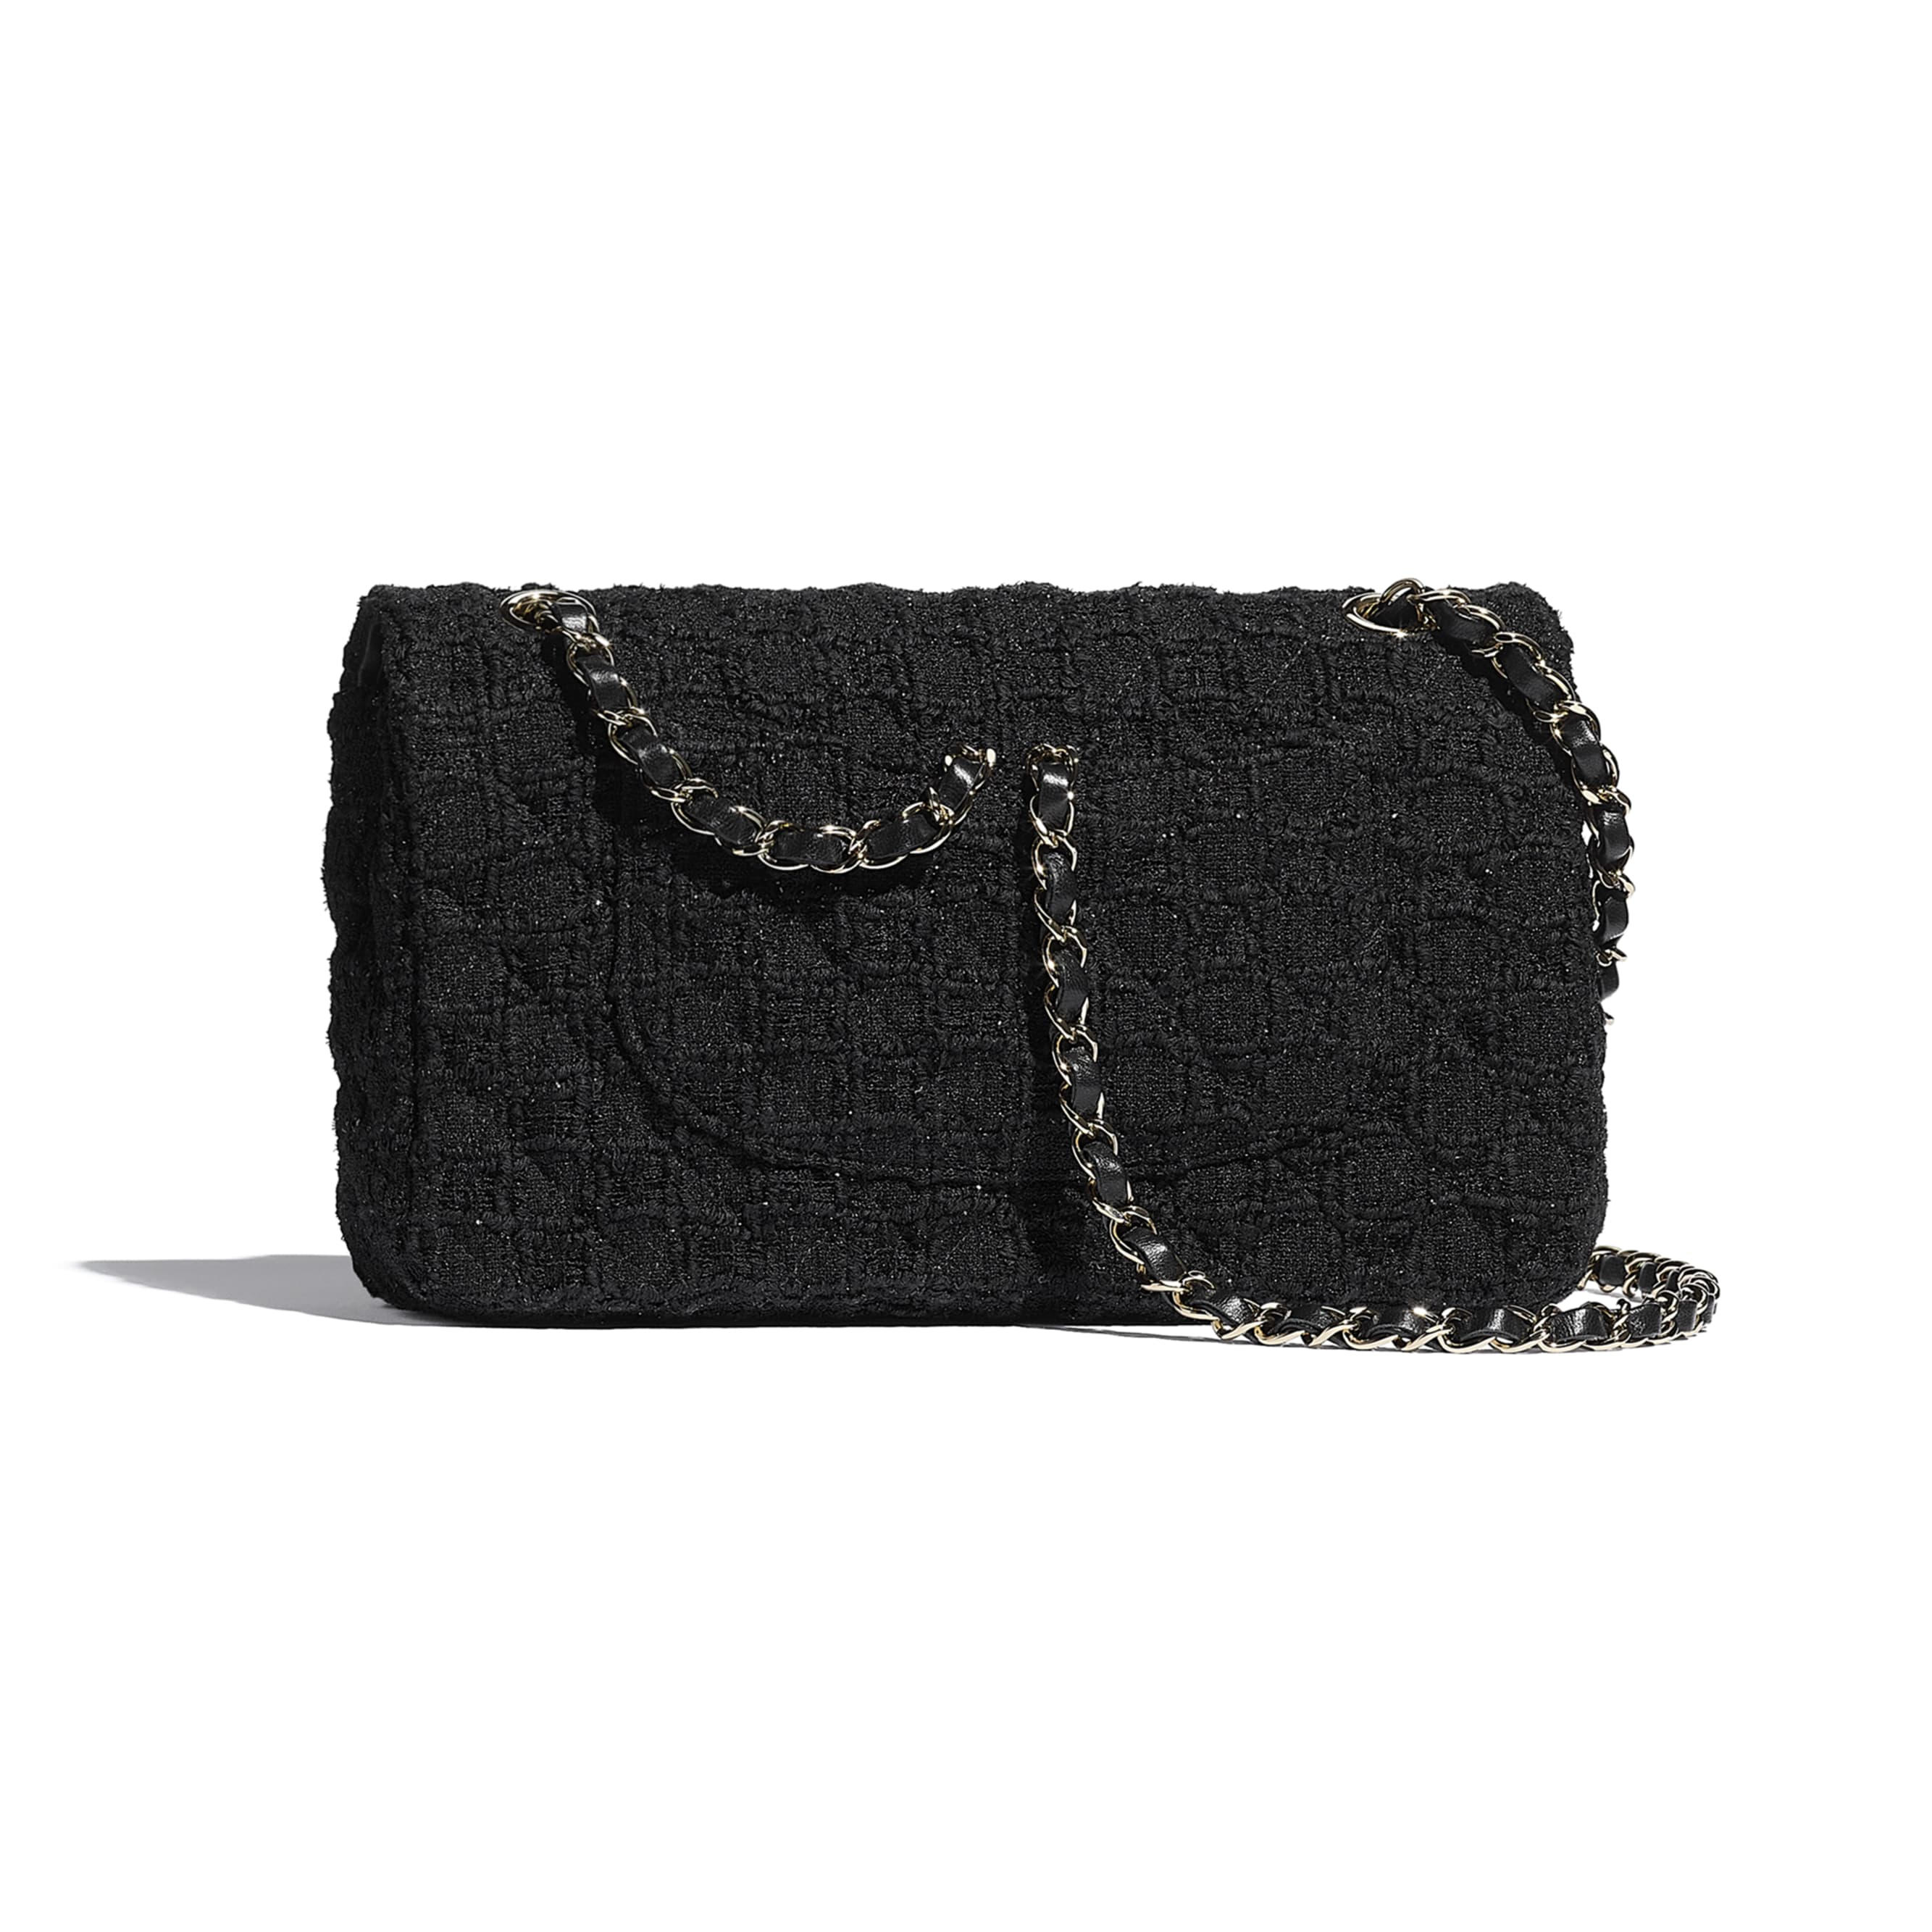 Classic Handbag - Black - Tweed & Gold Metal - CHANEL - Alternative view - see standard sized version